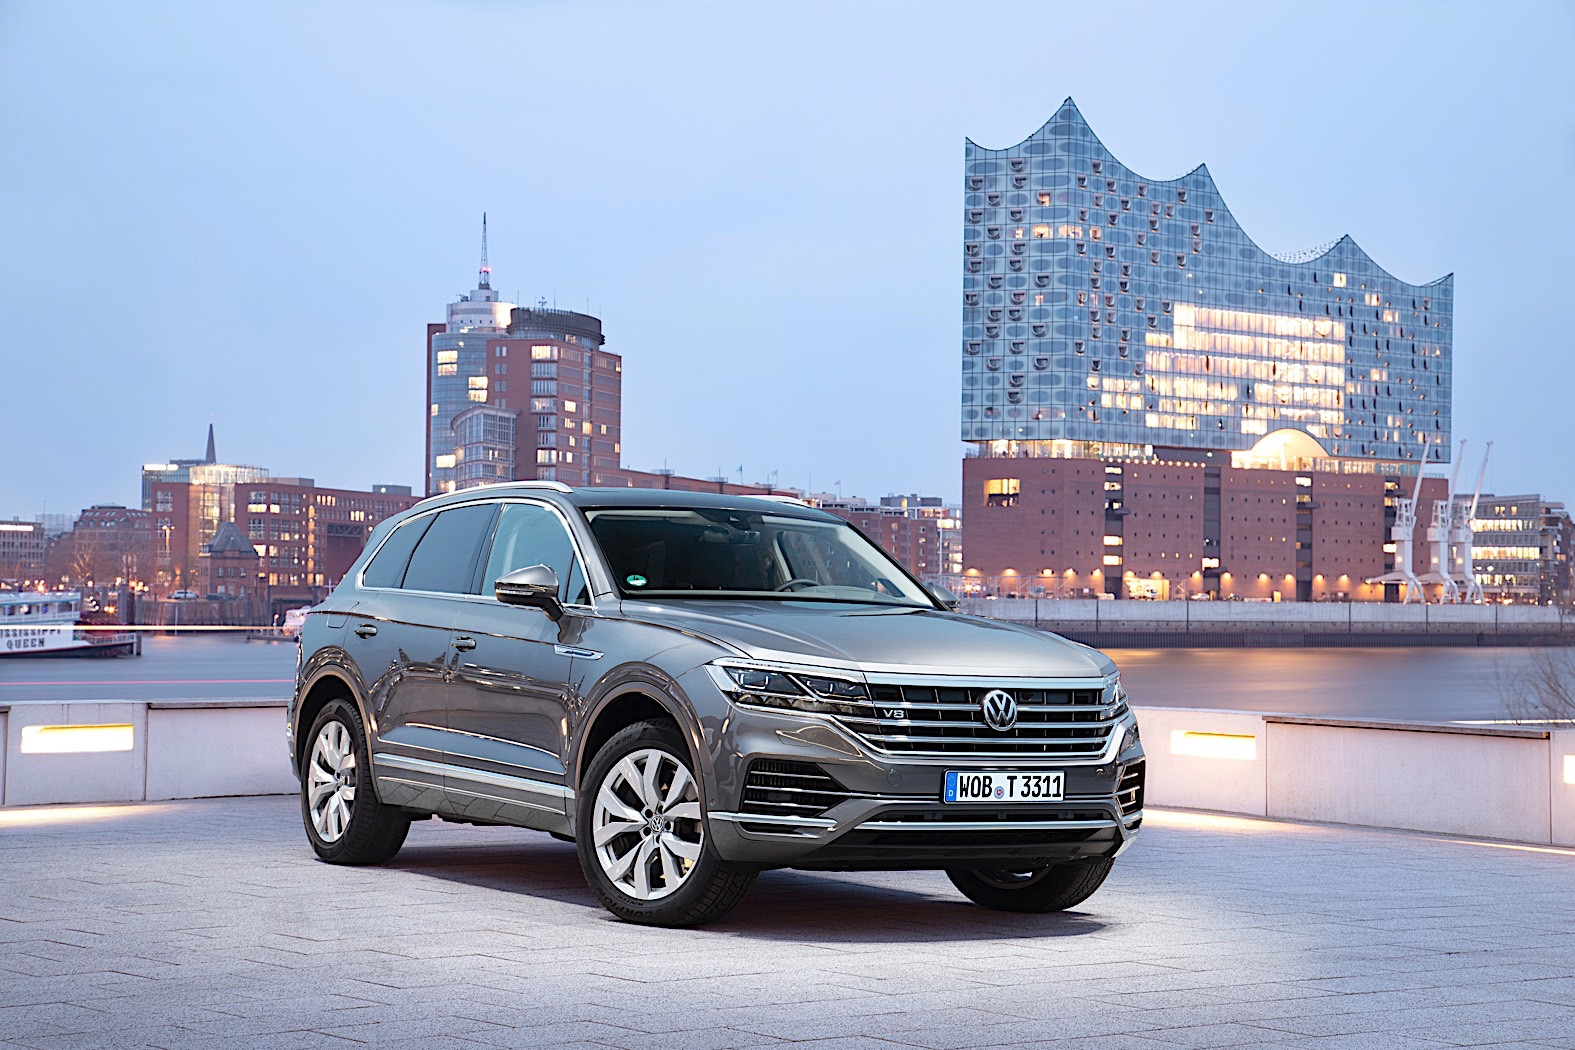 The Best Volkswagen Touareg V8 R-Line (2020) Price